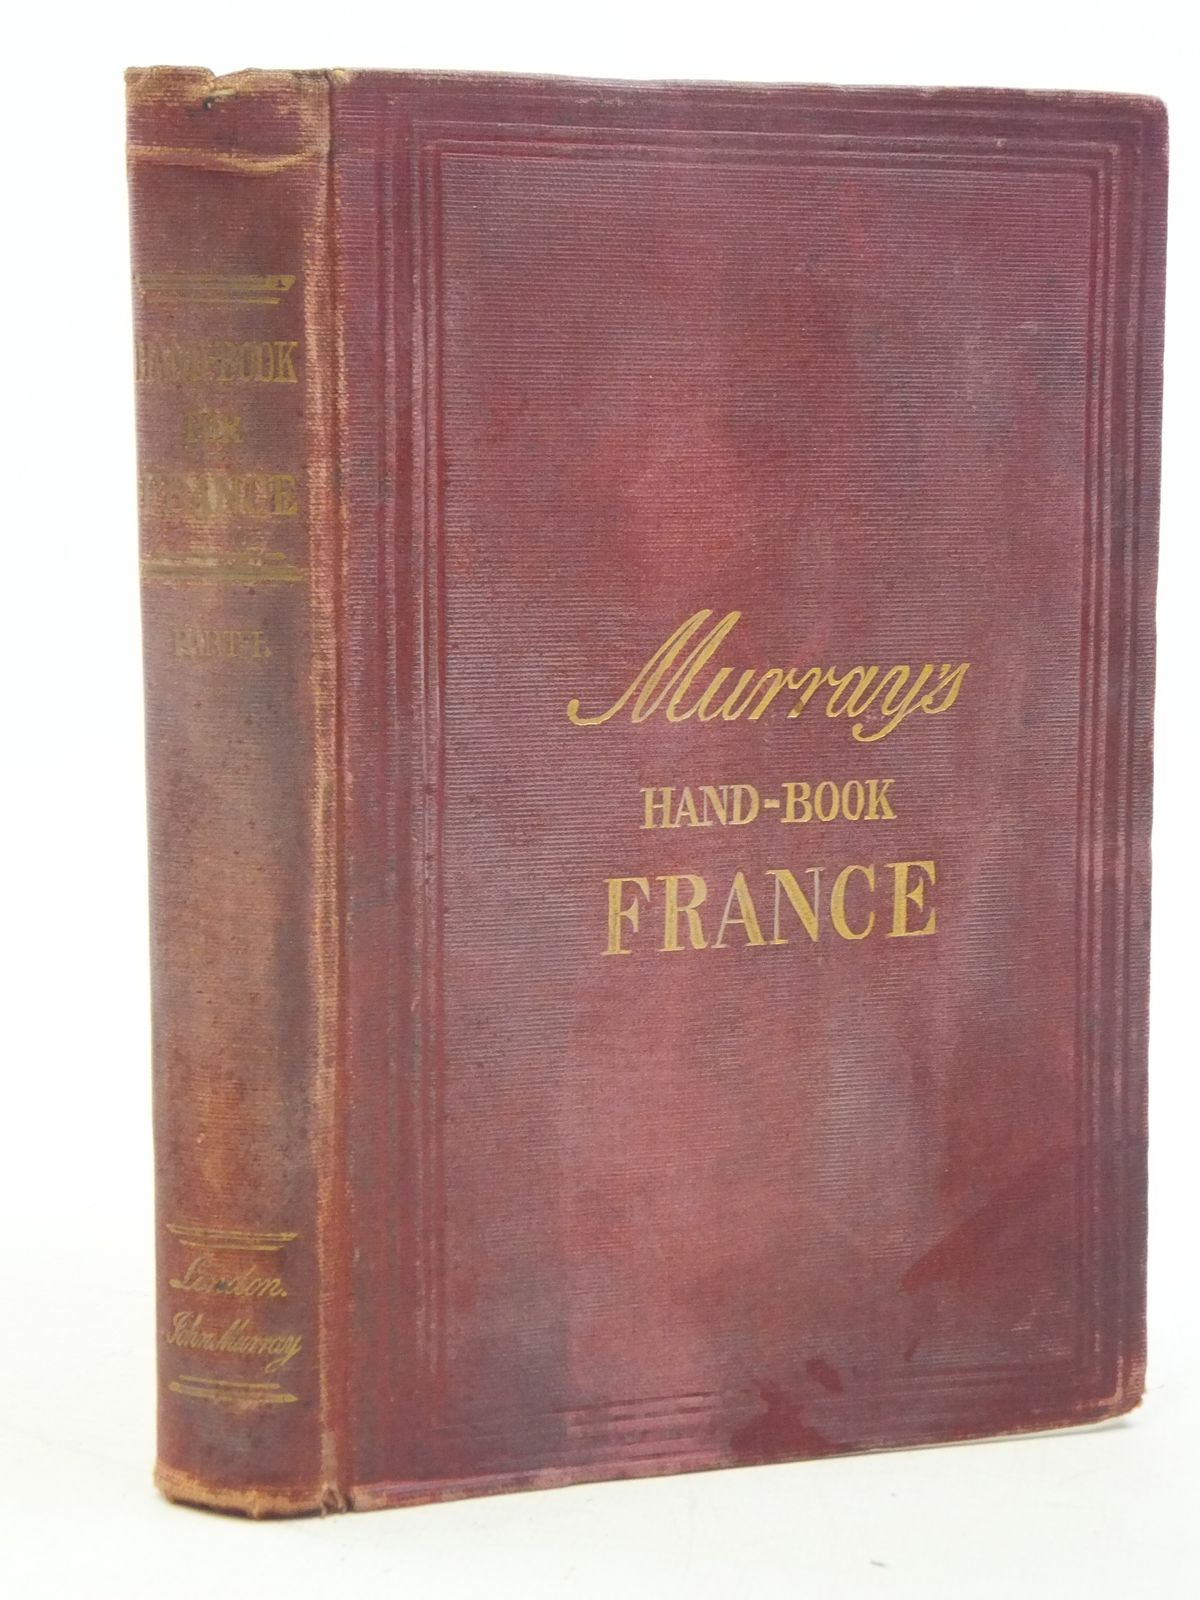 Murrays Handbook France - guide rouge